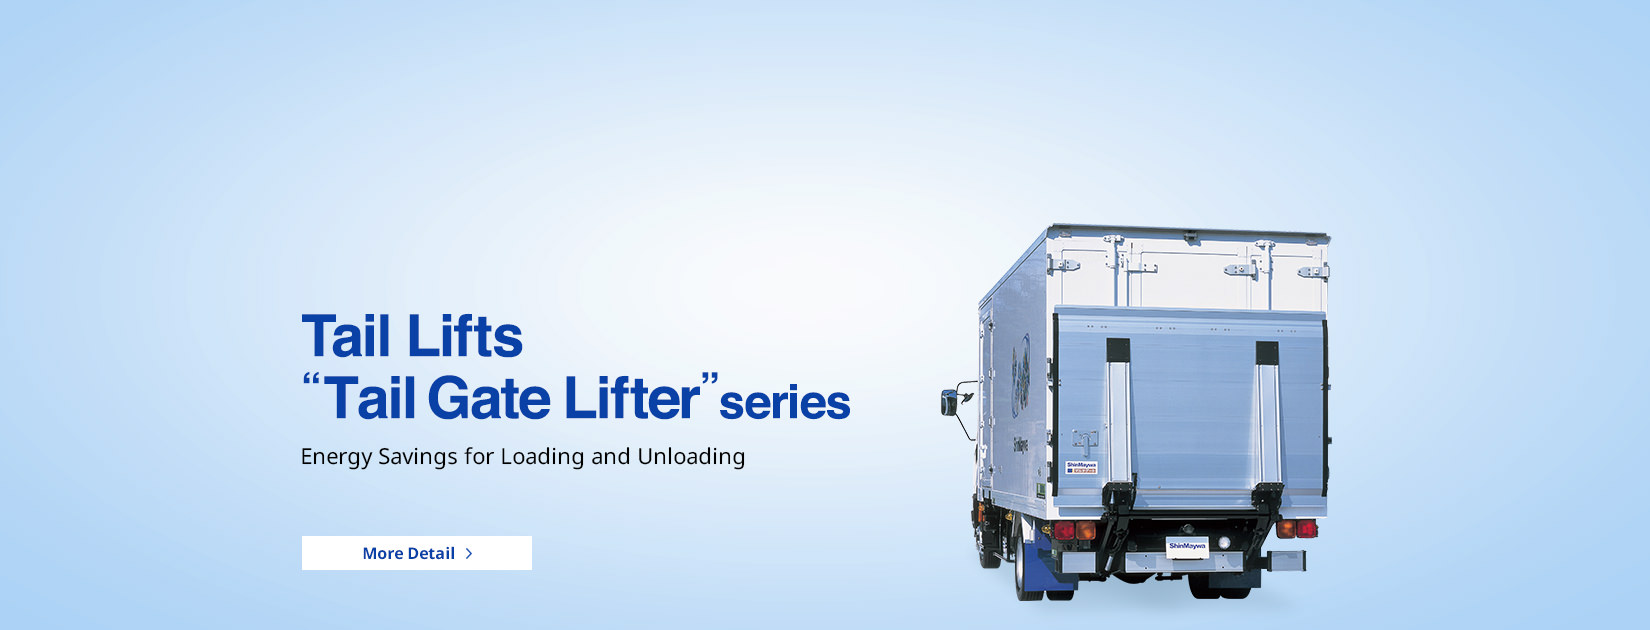 Tail Lifts 'Tail Gate Lifter' series Energy Savings for Loading and Unloading